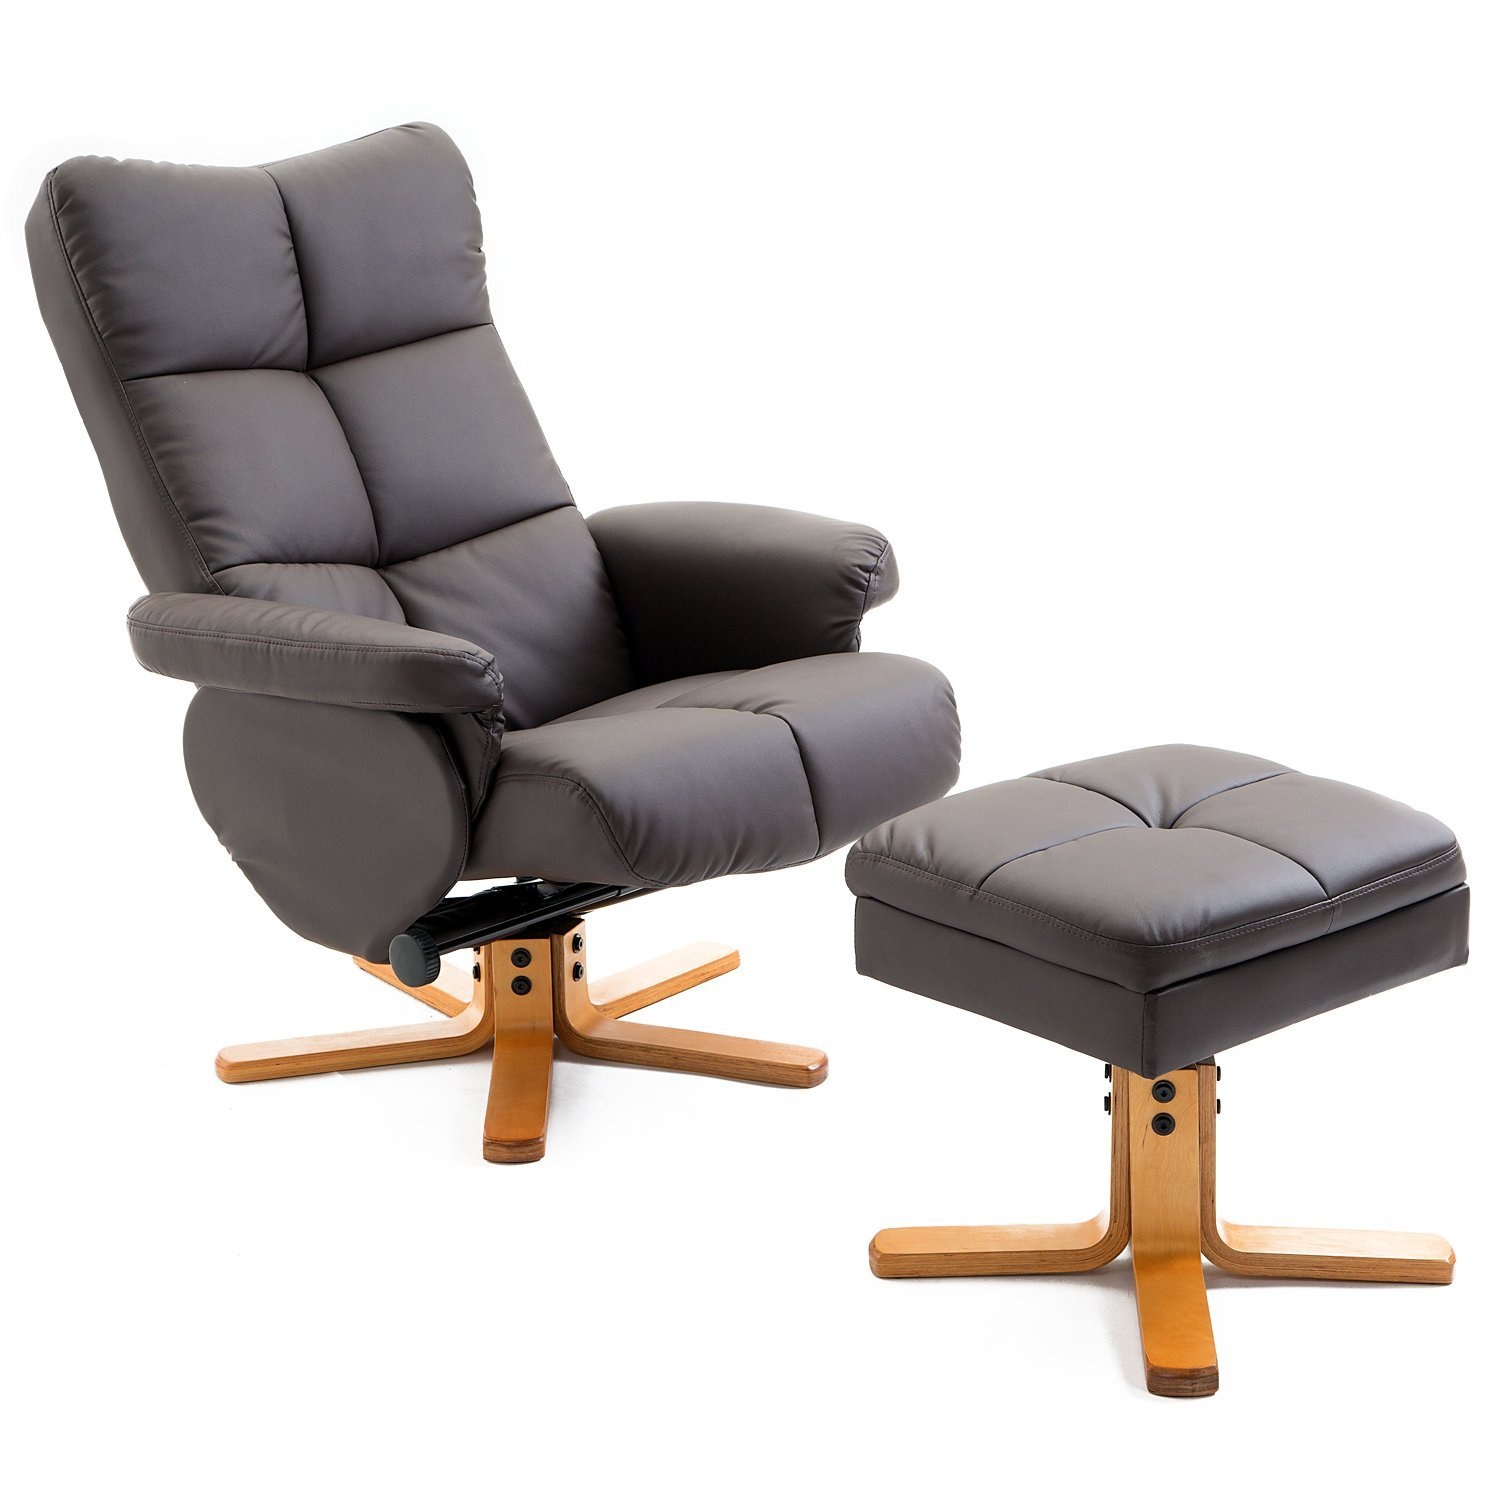 HOMCOM Armchair Chair Relax Recliner With Ottoman Faux Leather Brown